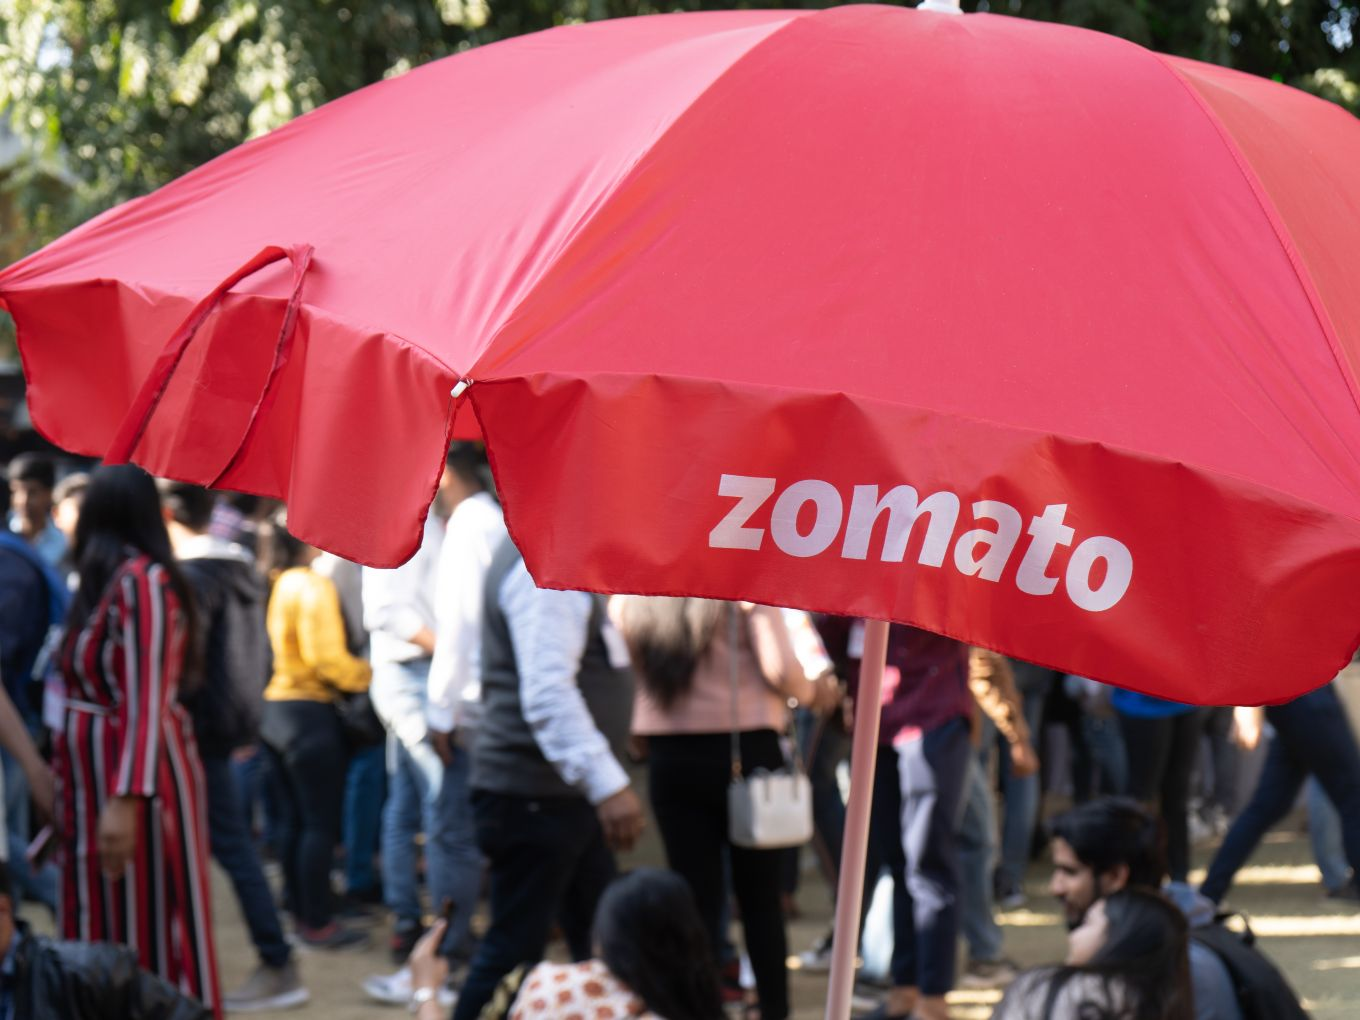 Zomato Delivery Partner Arrested In Bengaluru After Alleged Assault